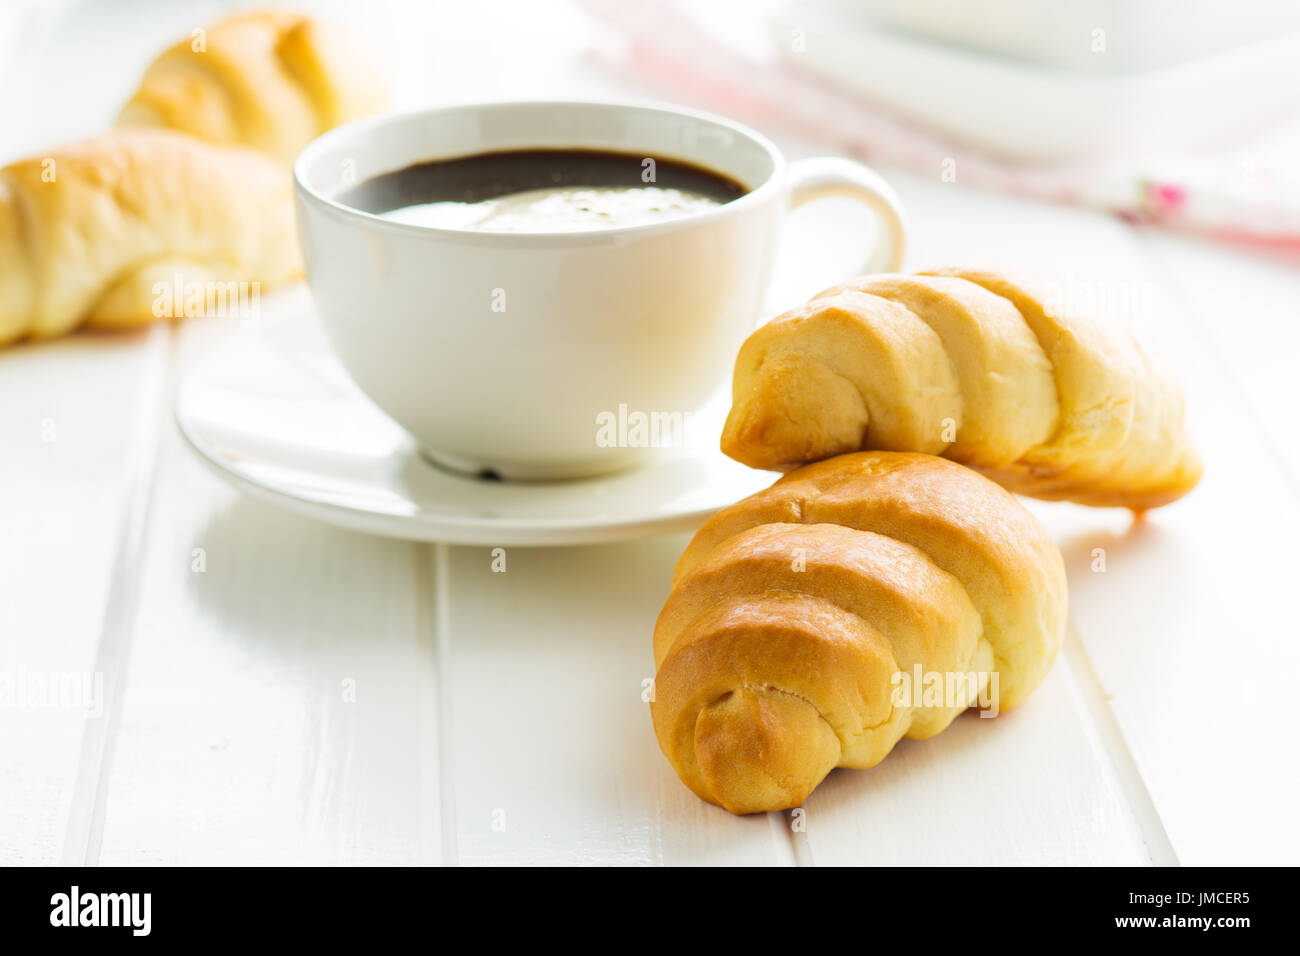 Sweet tasty croissants and coffee cup on white table. - Stock Image